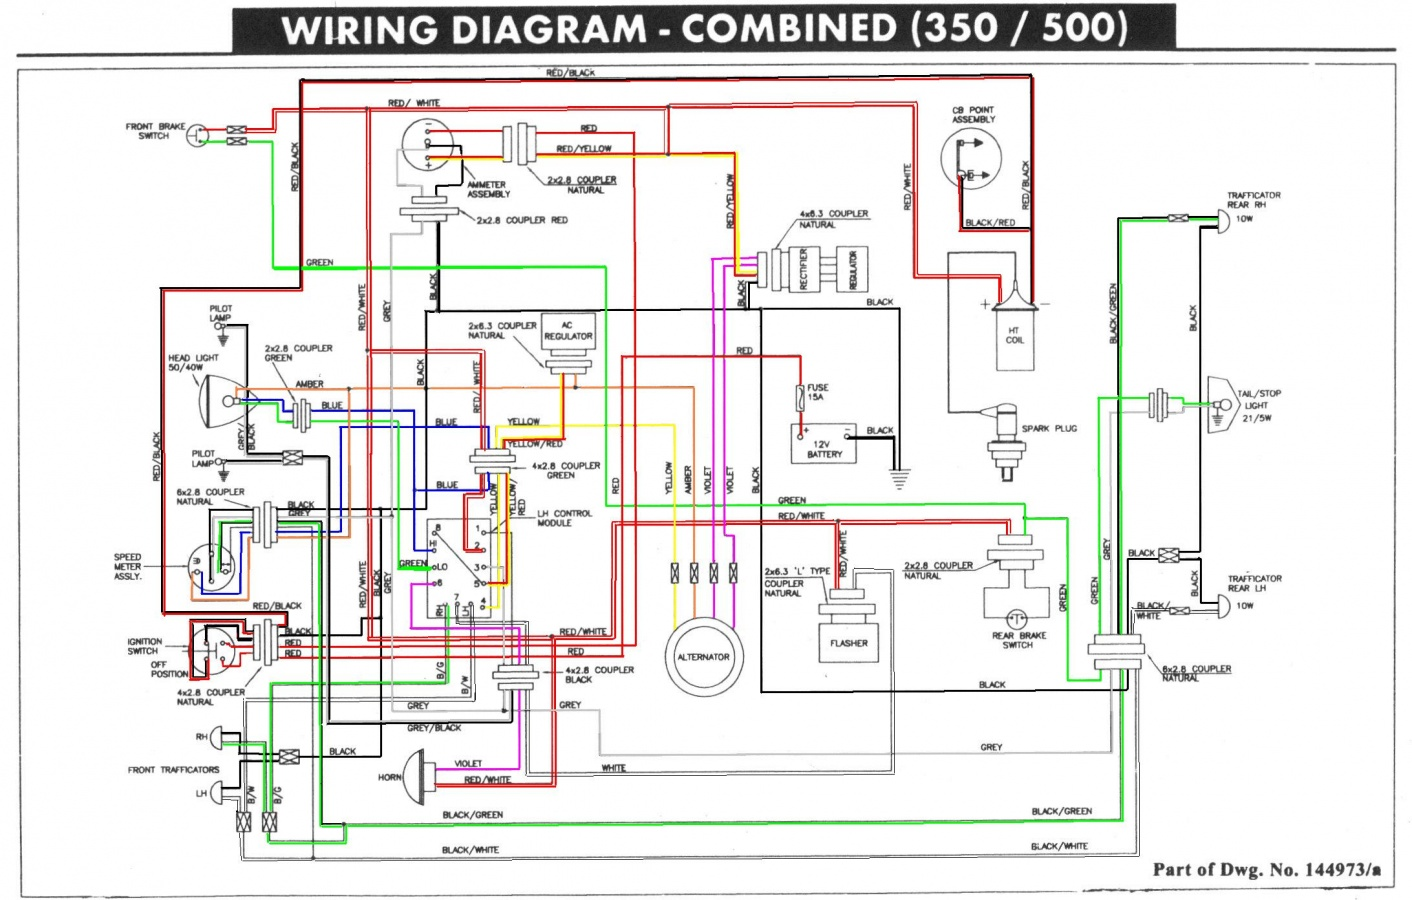 motor wiring diagram for 92 gmc truck wiring diagram website